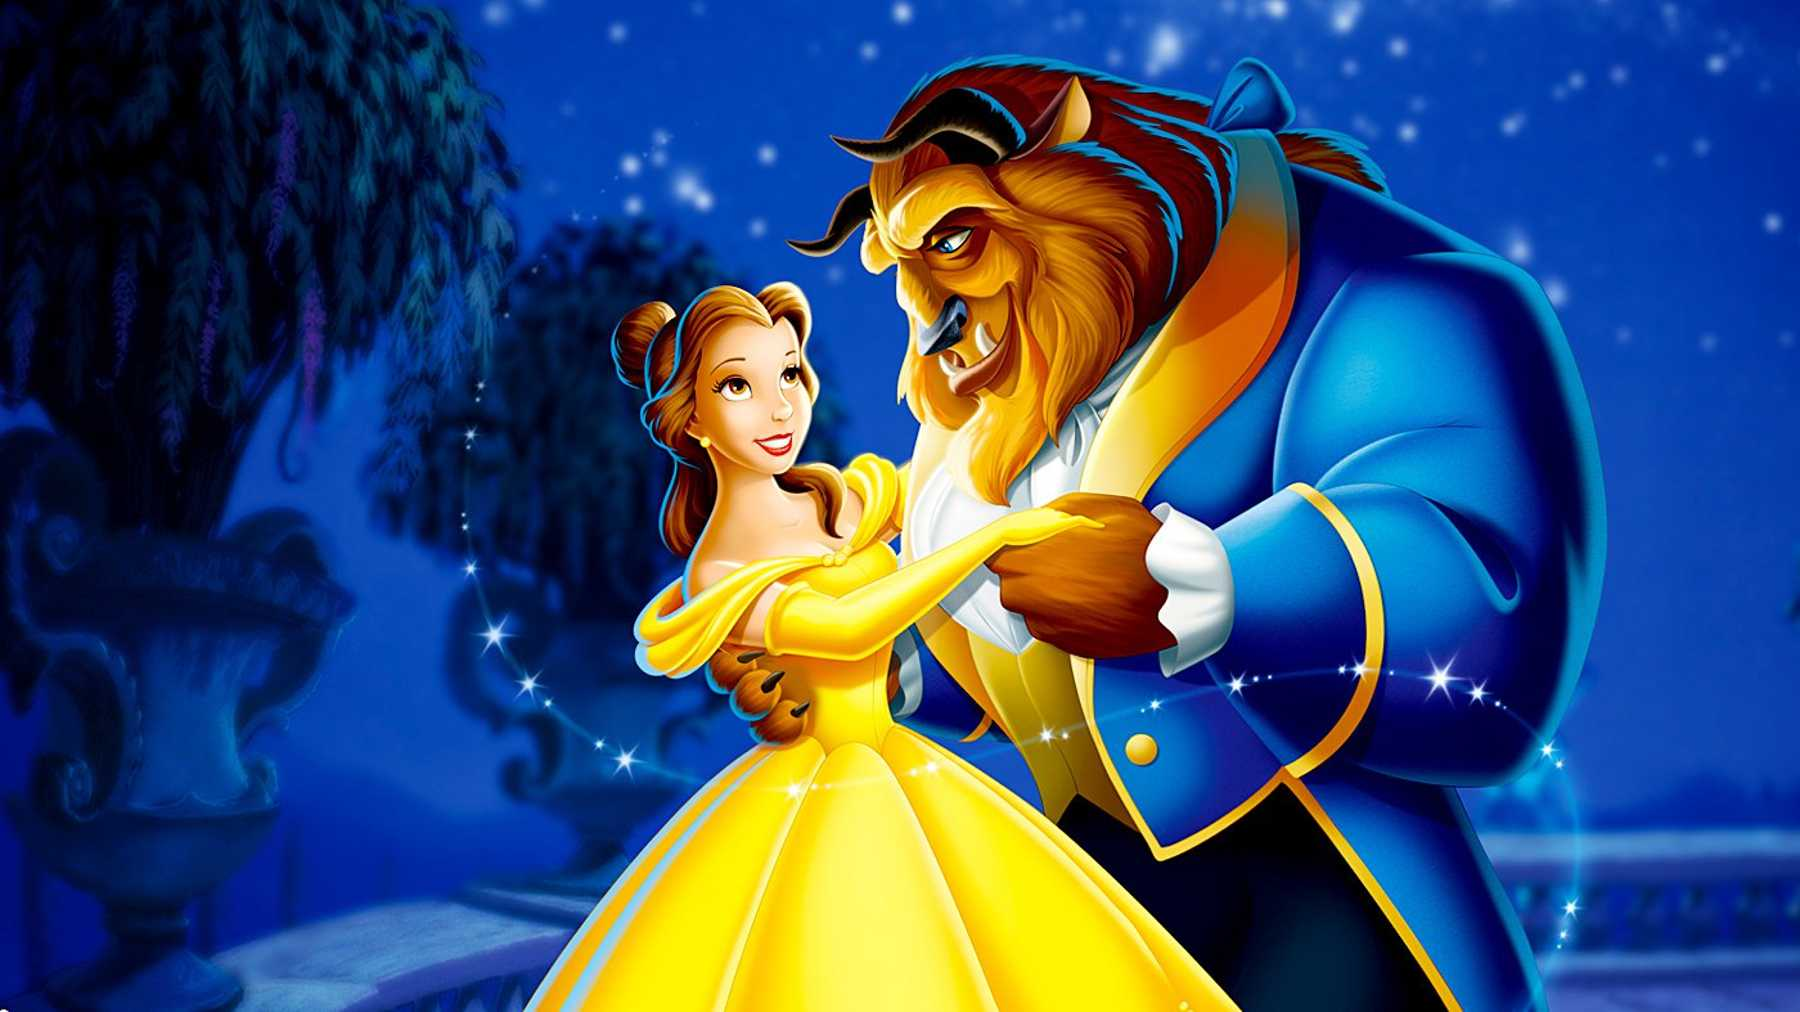 Beauty And The Beast Review | Movie - Empire